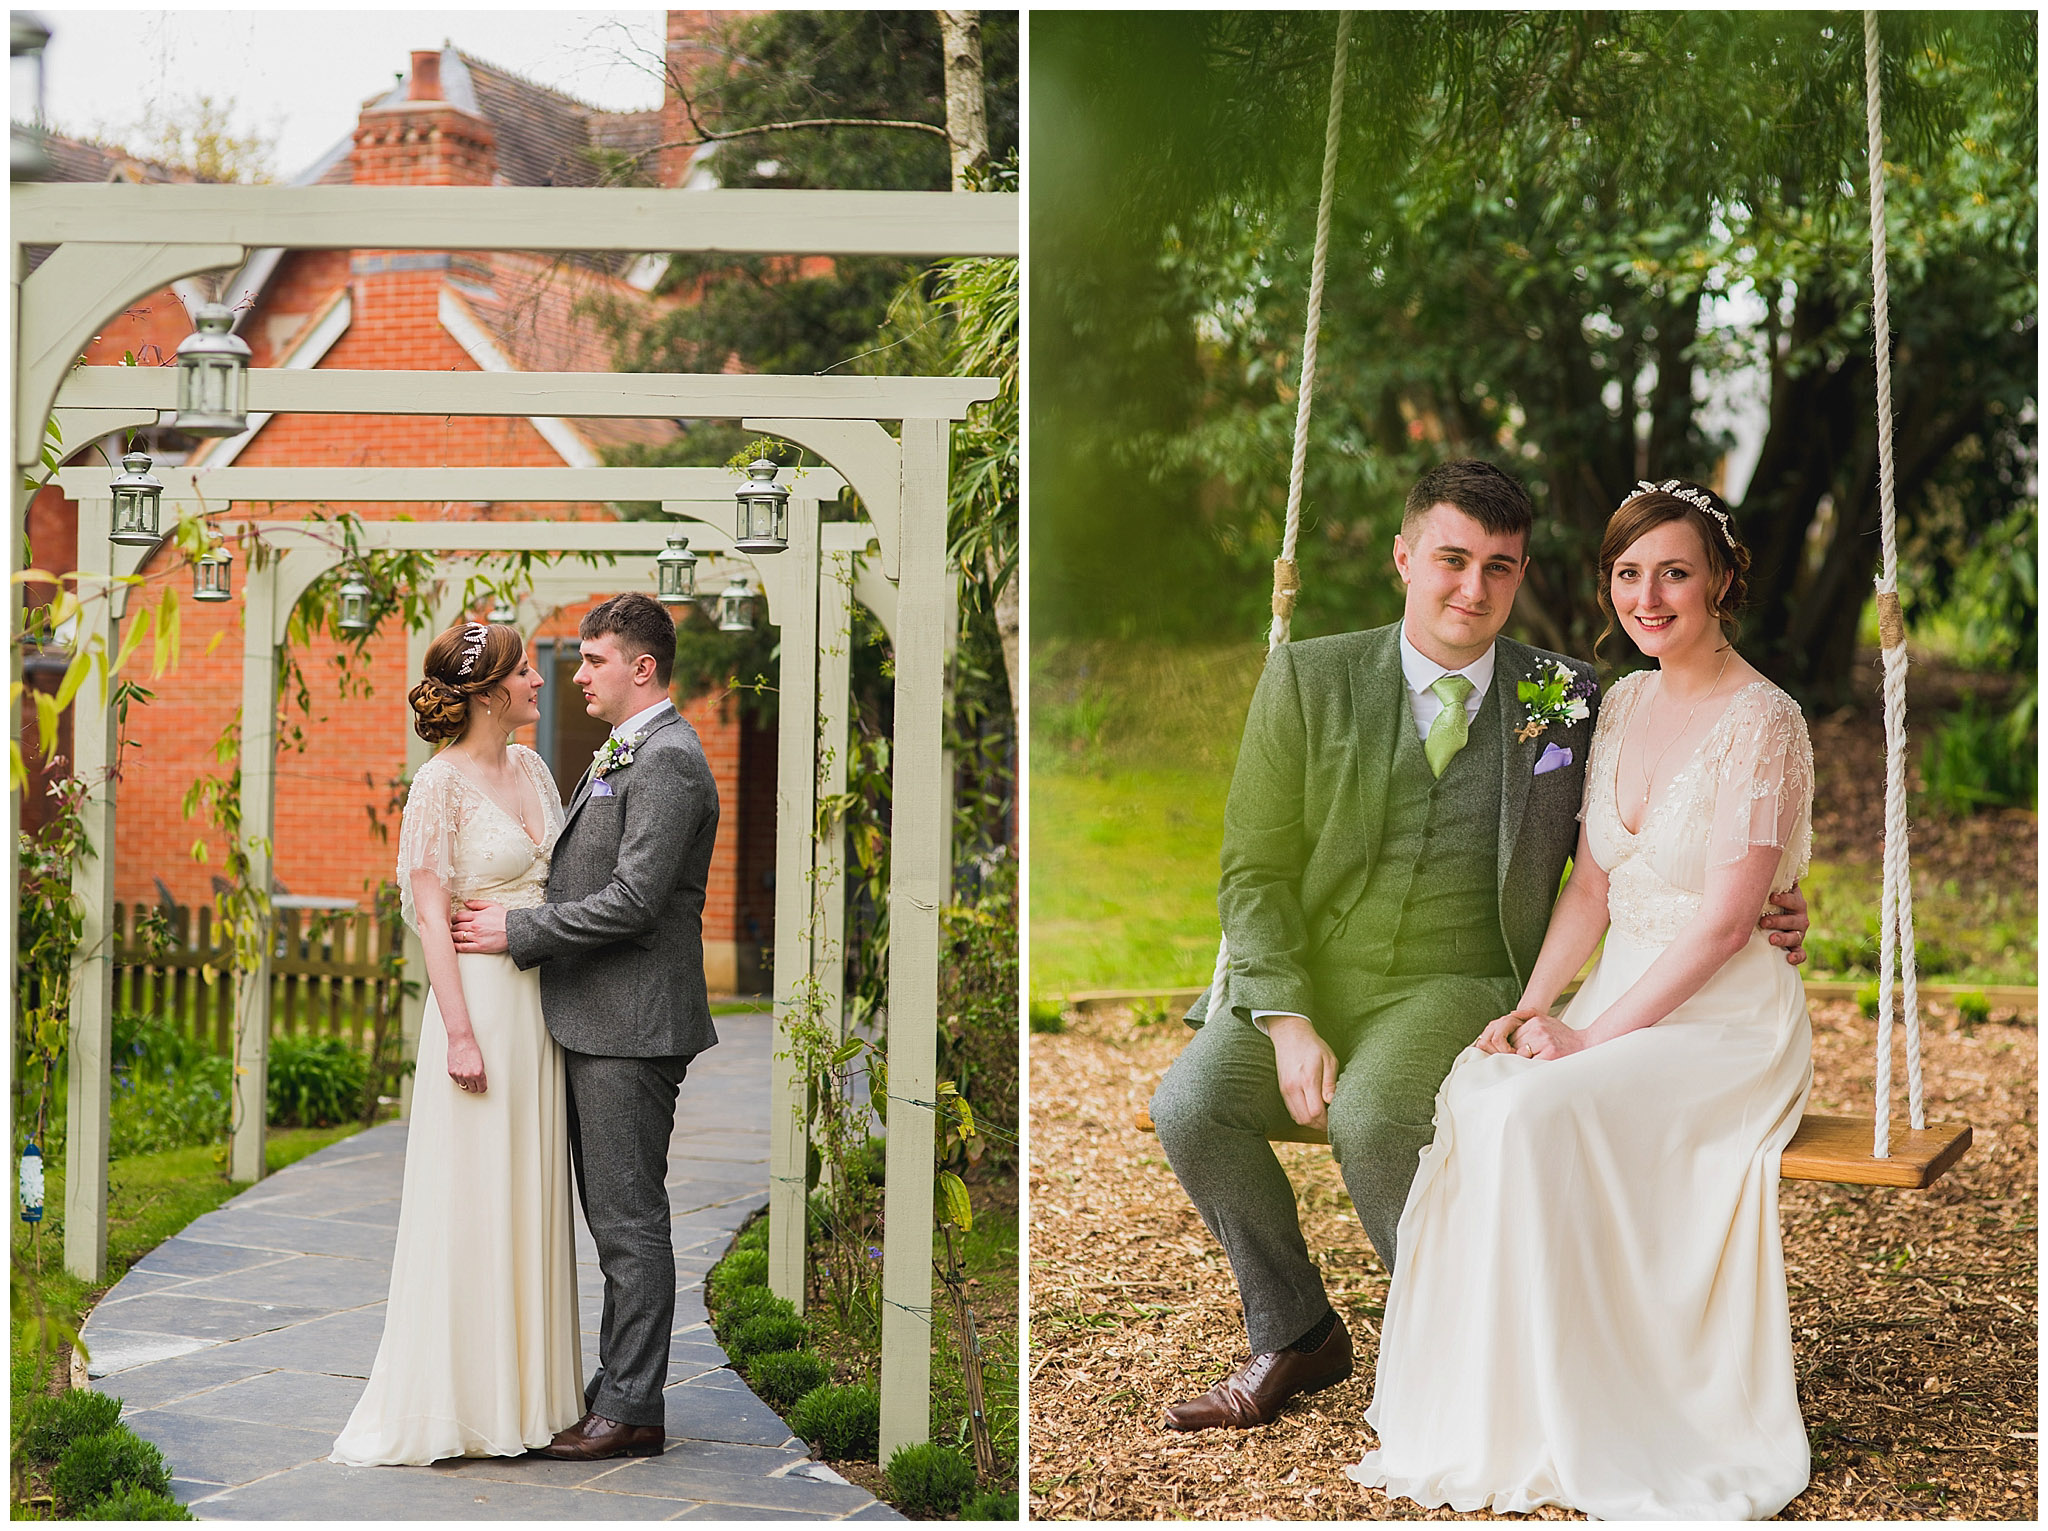 Sarah-&-Dan-The-Old-Vicarage-Wedding-Venue-Dorset-Photographer-36